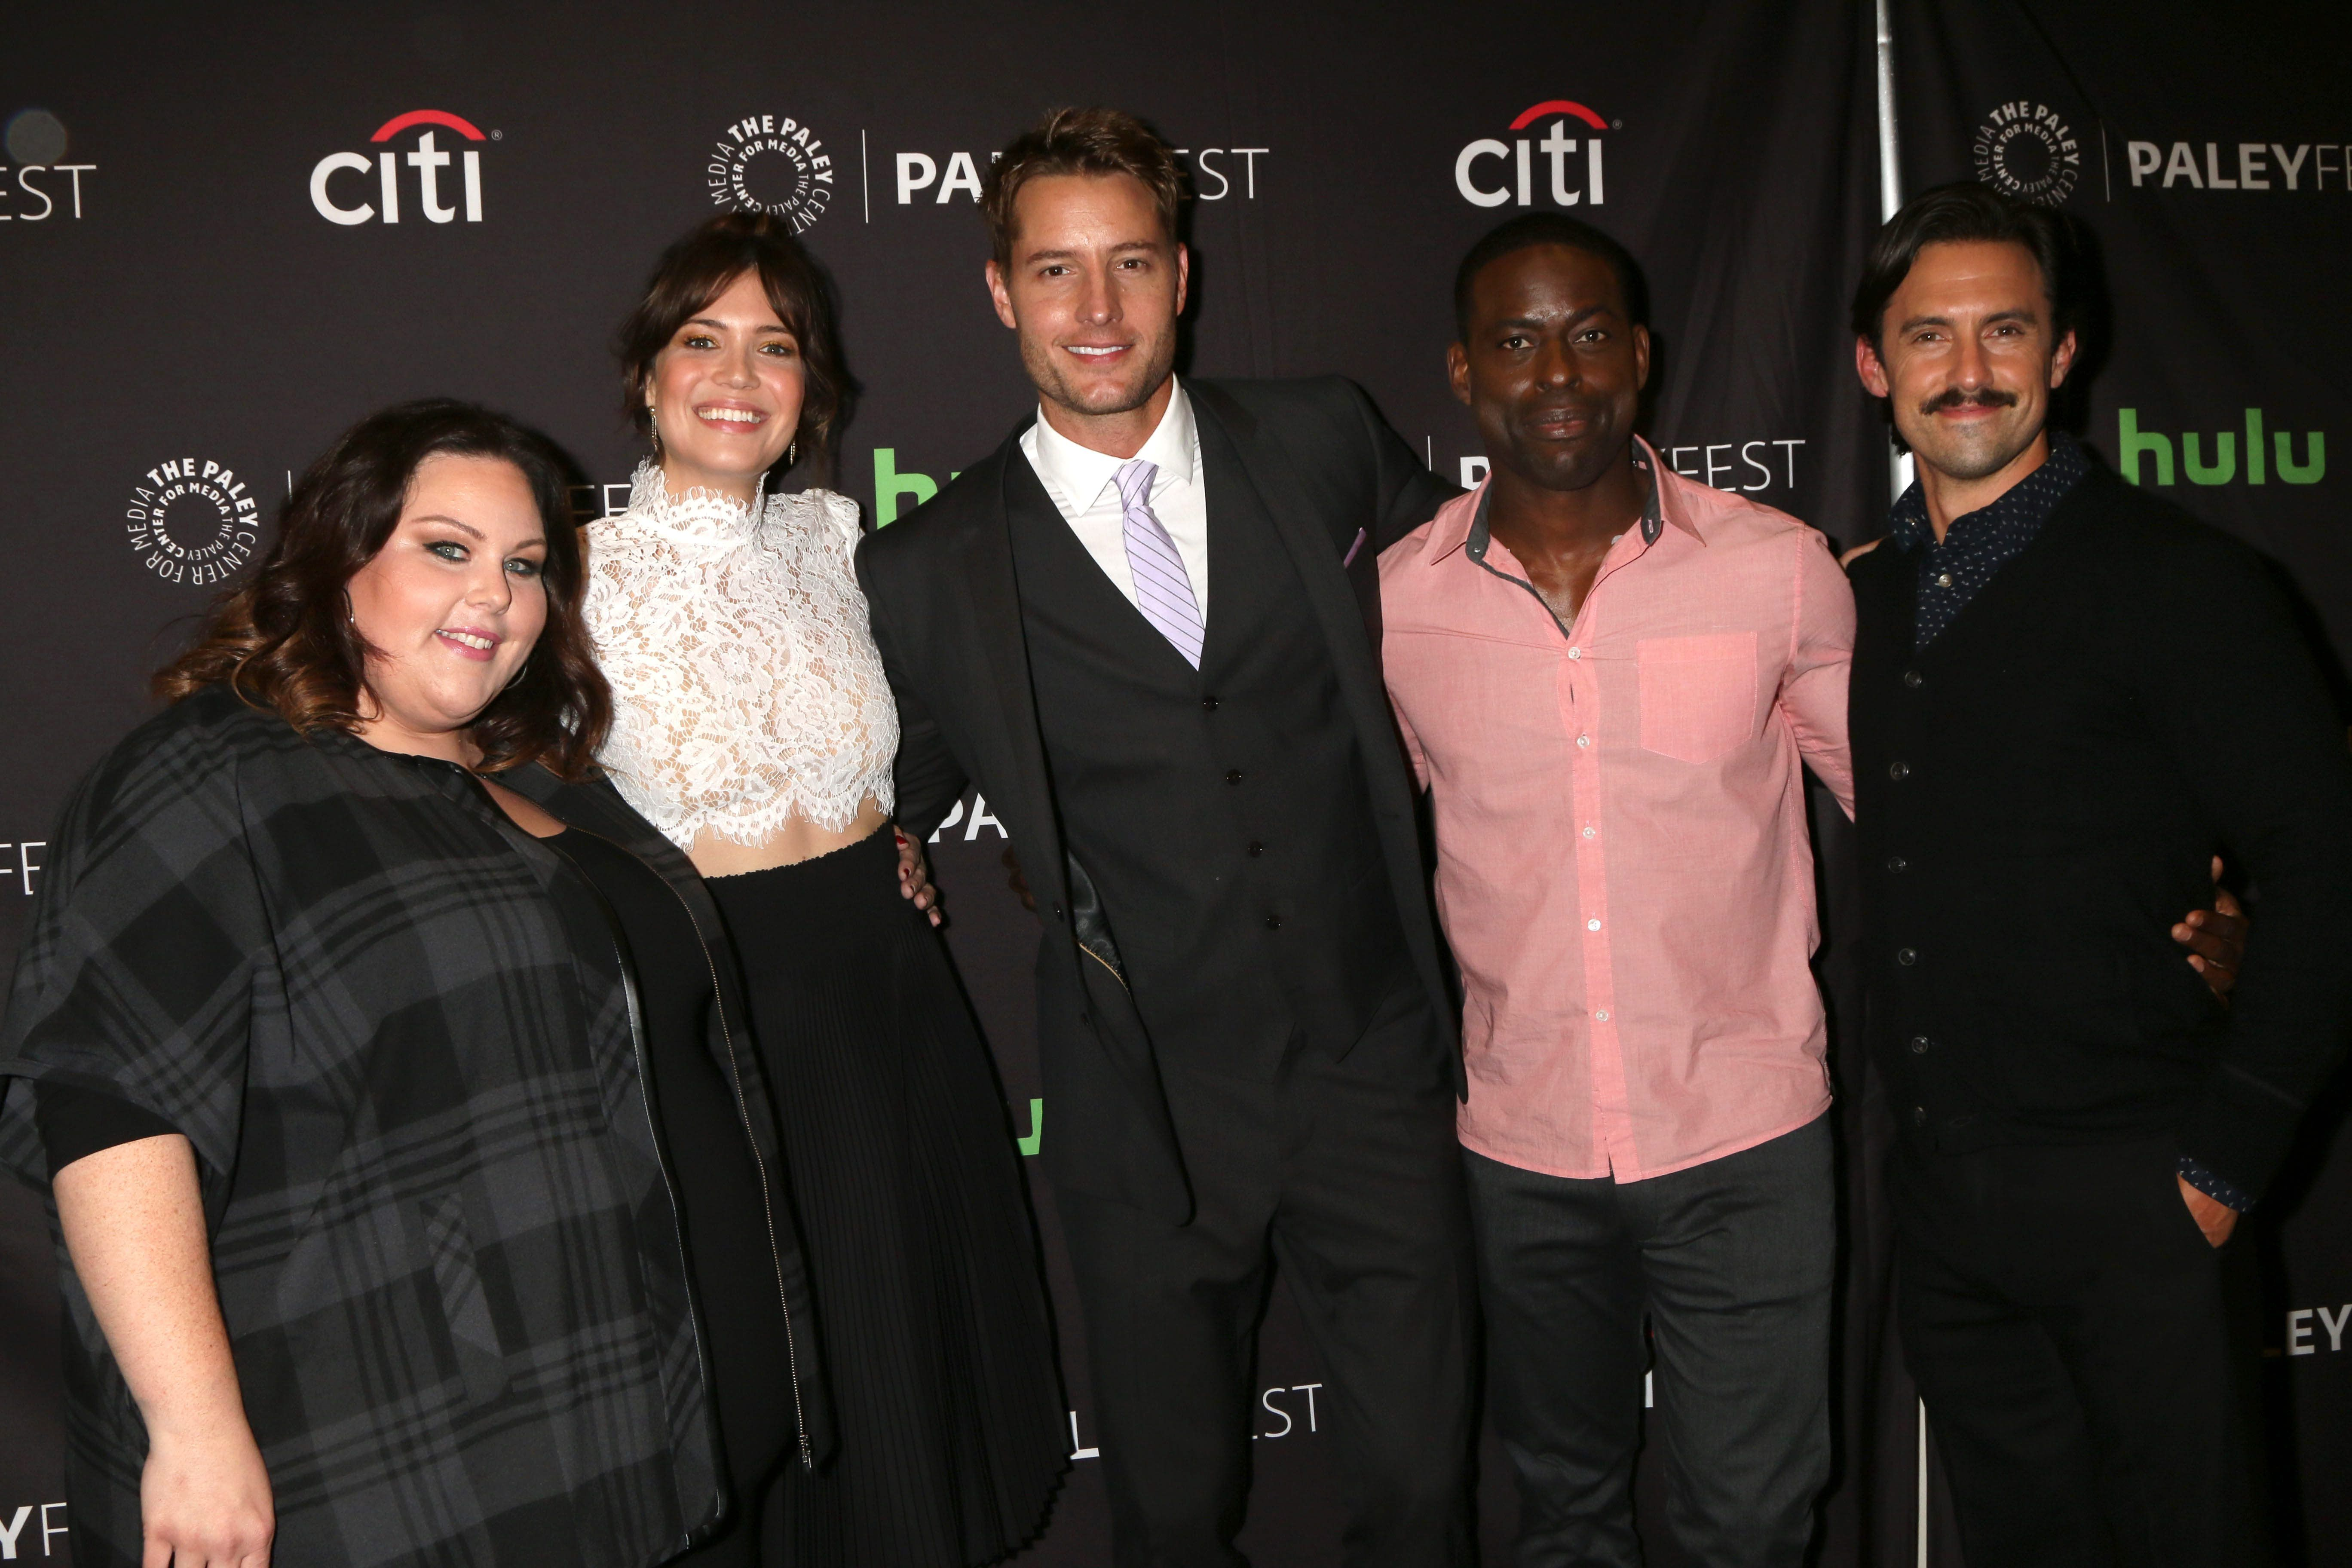 Cast Of This Is Us: How Much Are They Worth?